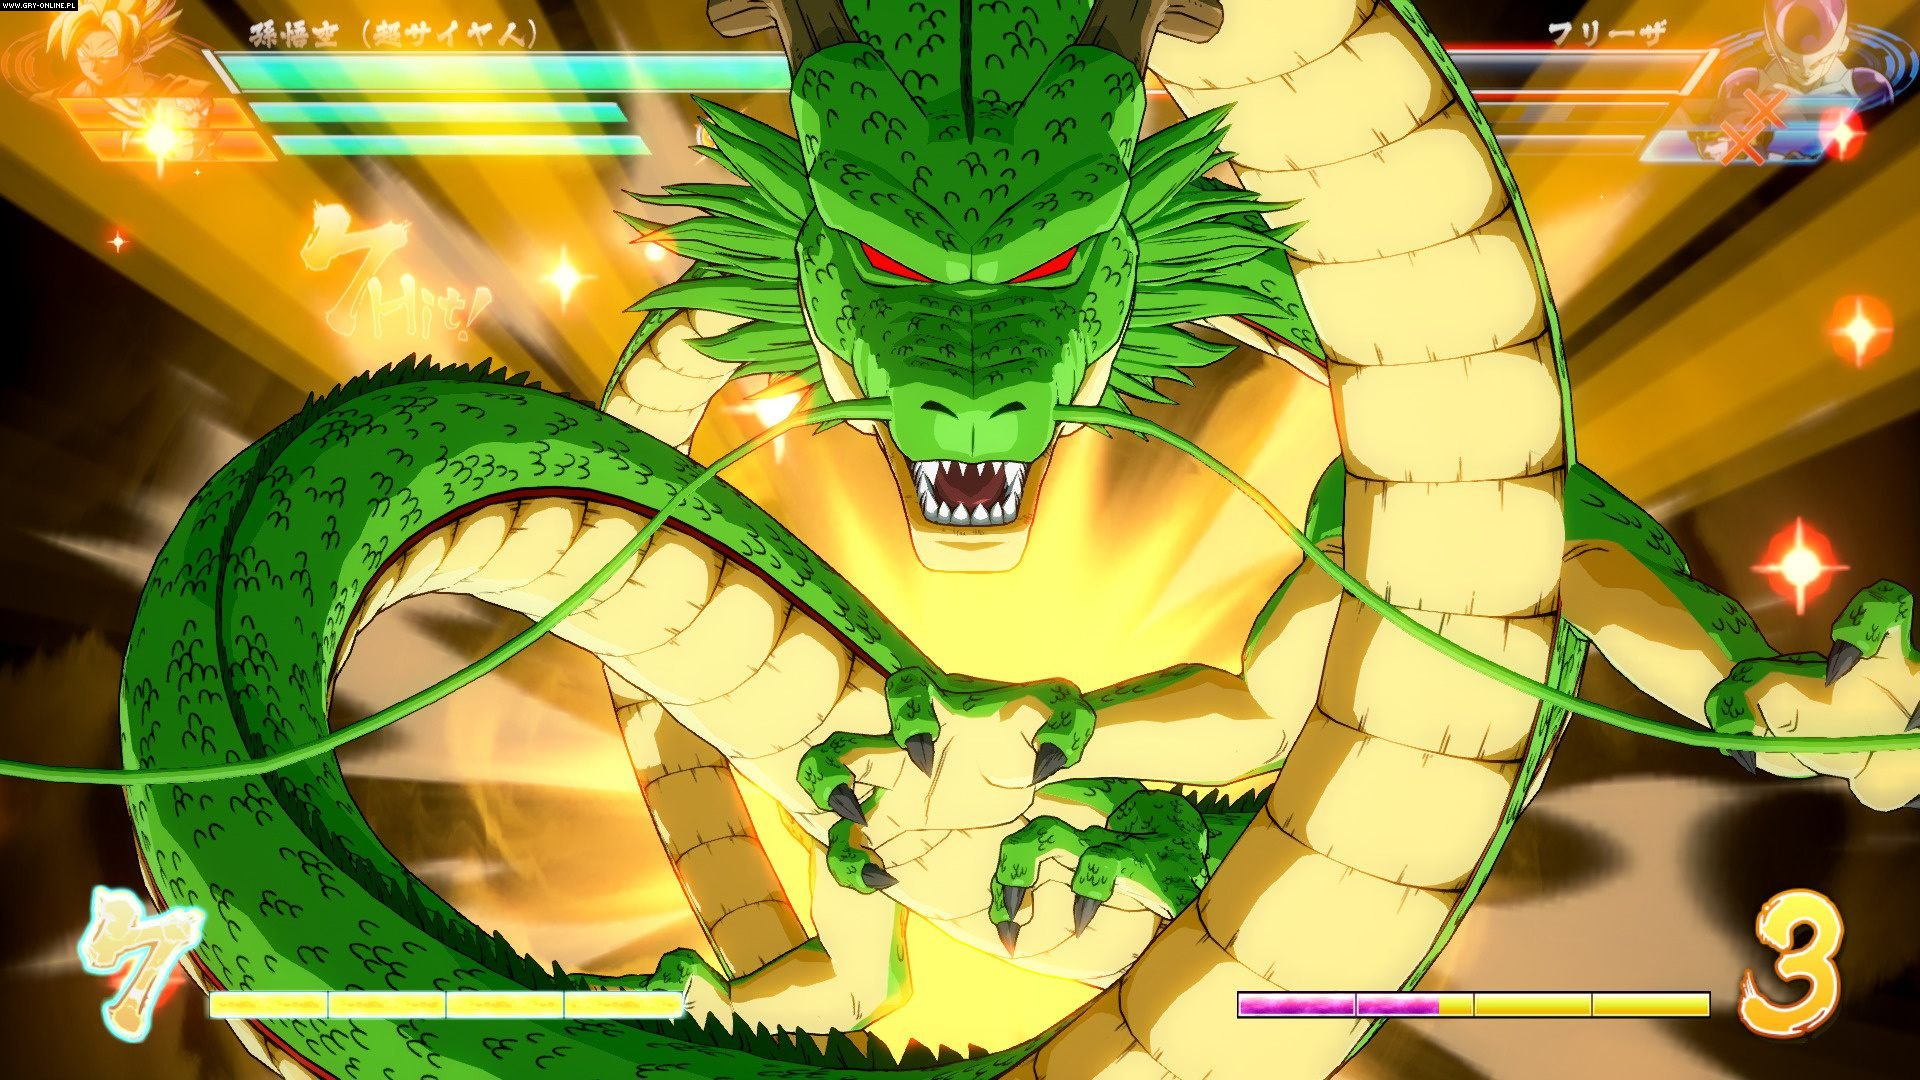 Dragon Ball FighterZ PC, PS4, XONE Games Image 26/158, Arc System Works, Bandai Namco Entertainment